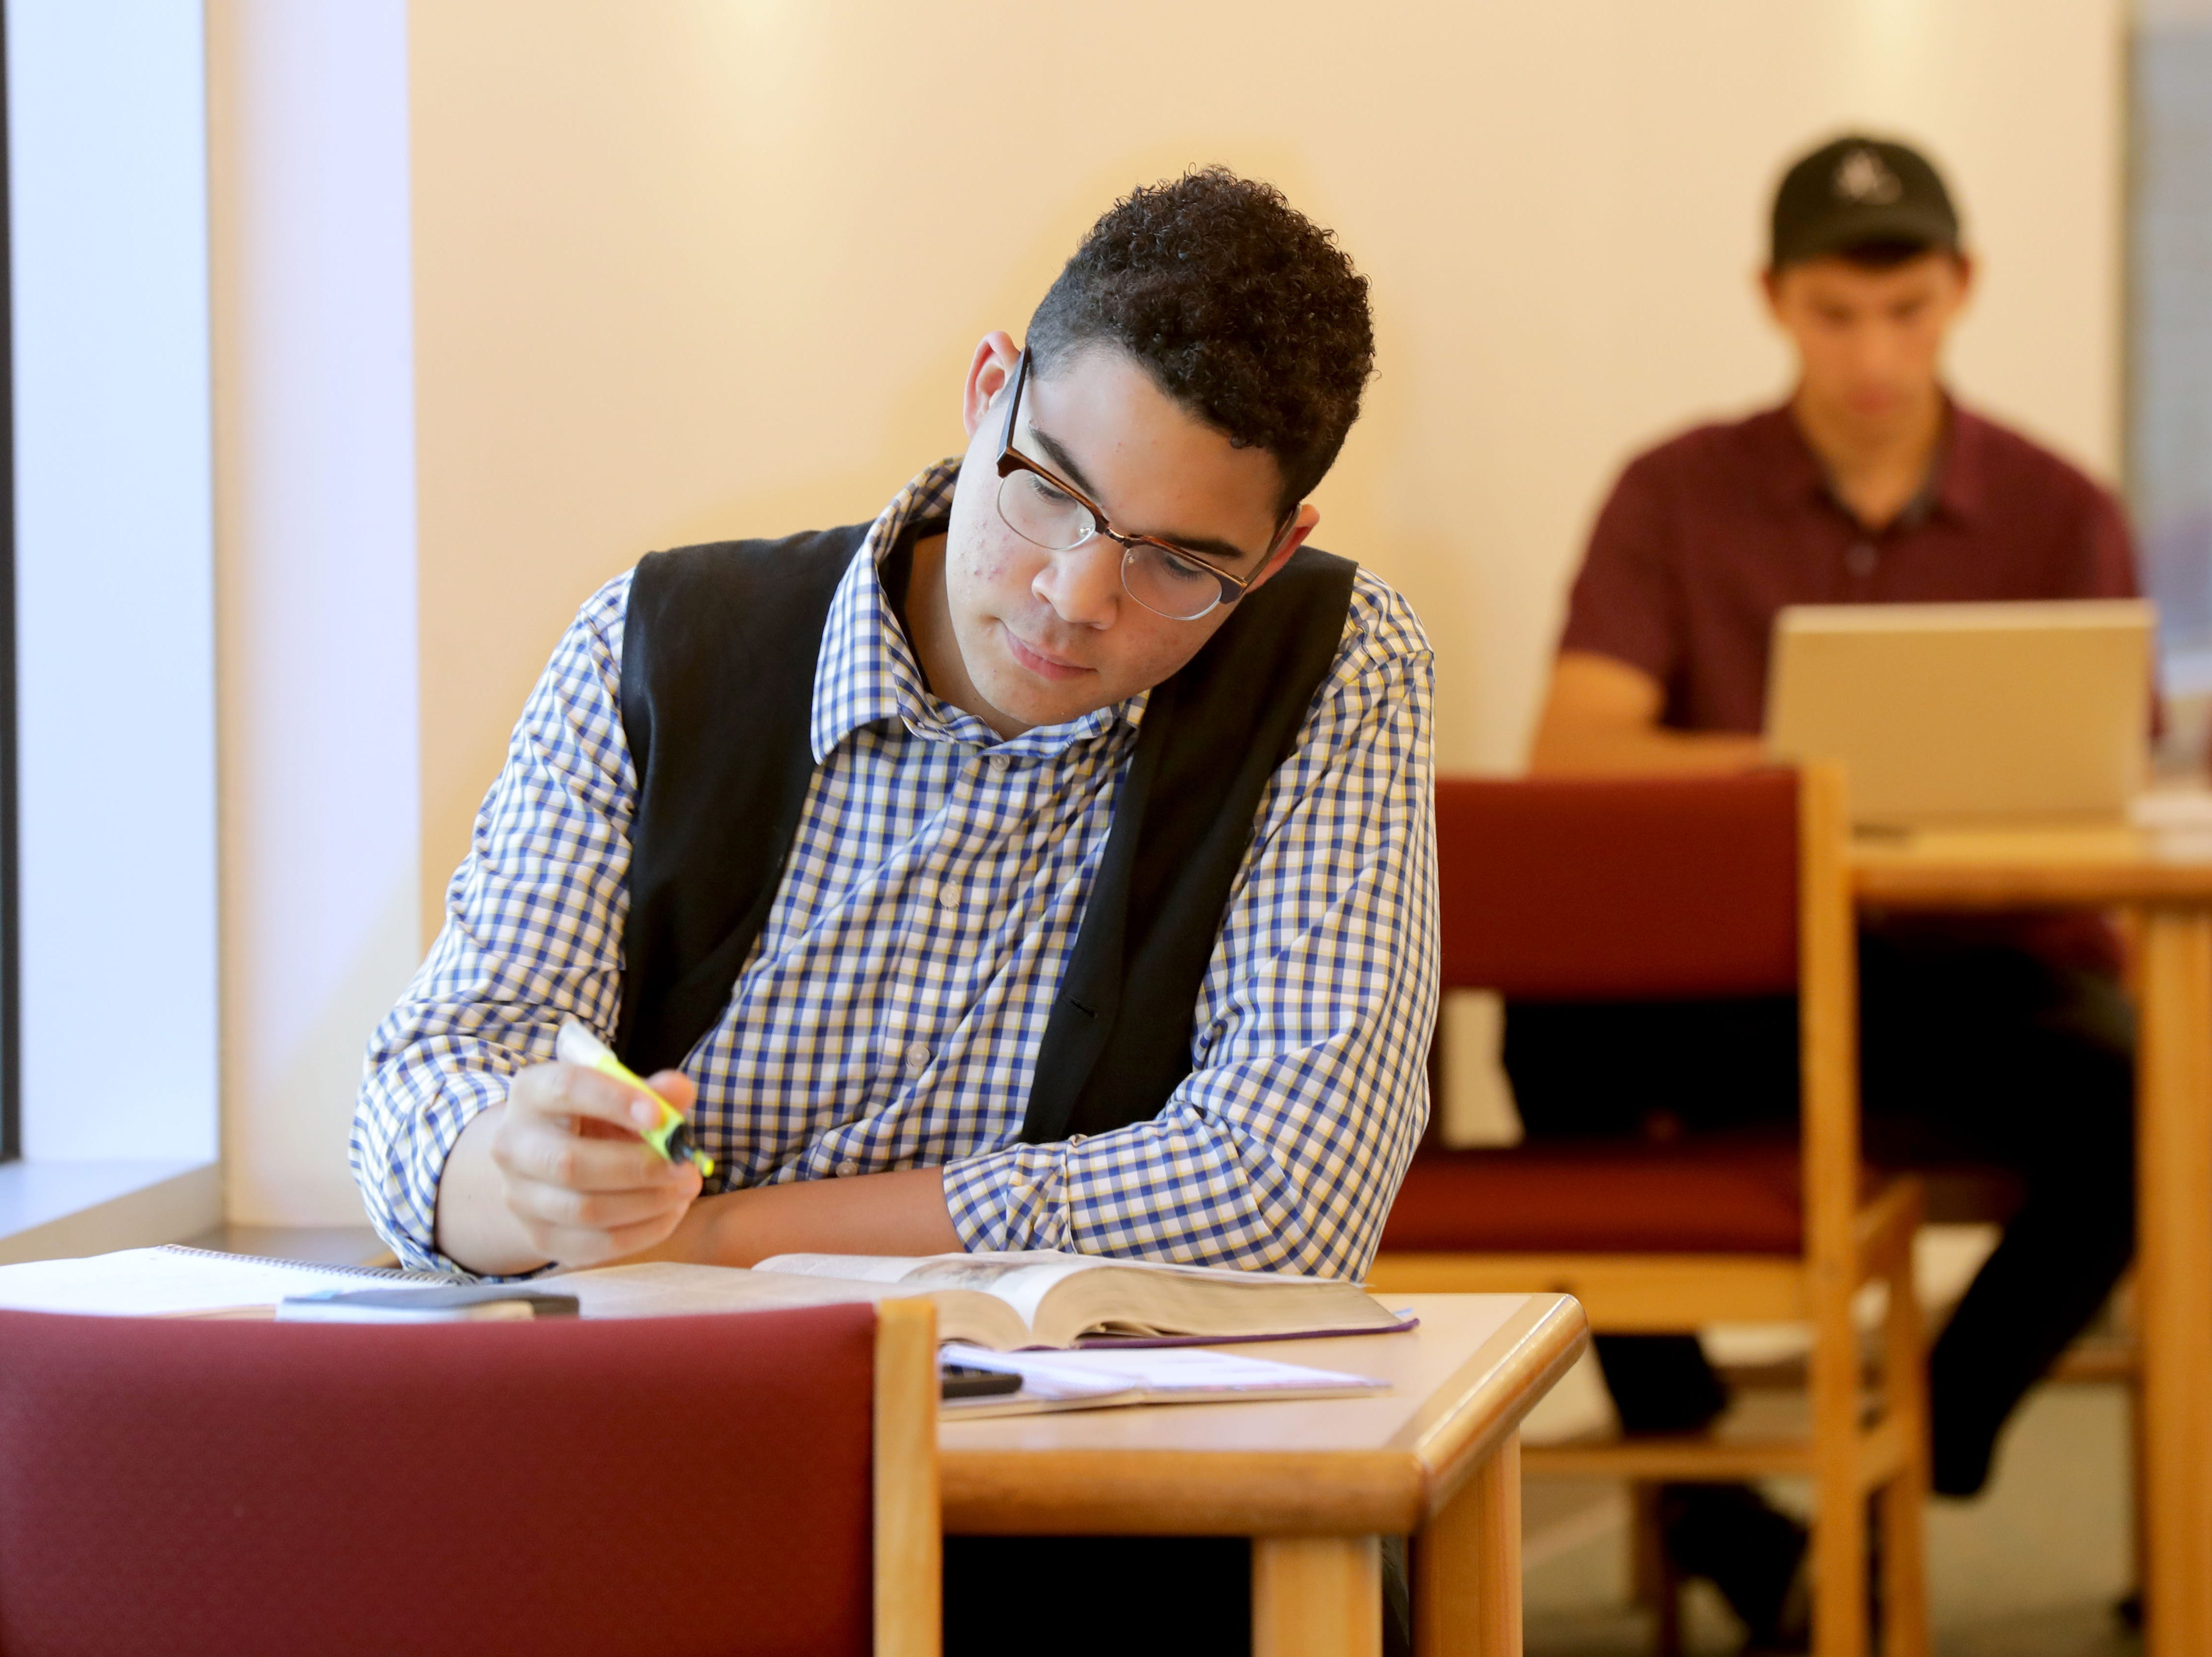 Steven Bullock, a senior at Sheboygan Lutheran High School taking a college class, studies at the University of Wisconsin-Green Bay, Sheboygan Campus library.